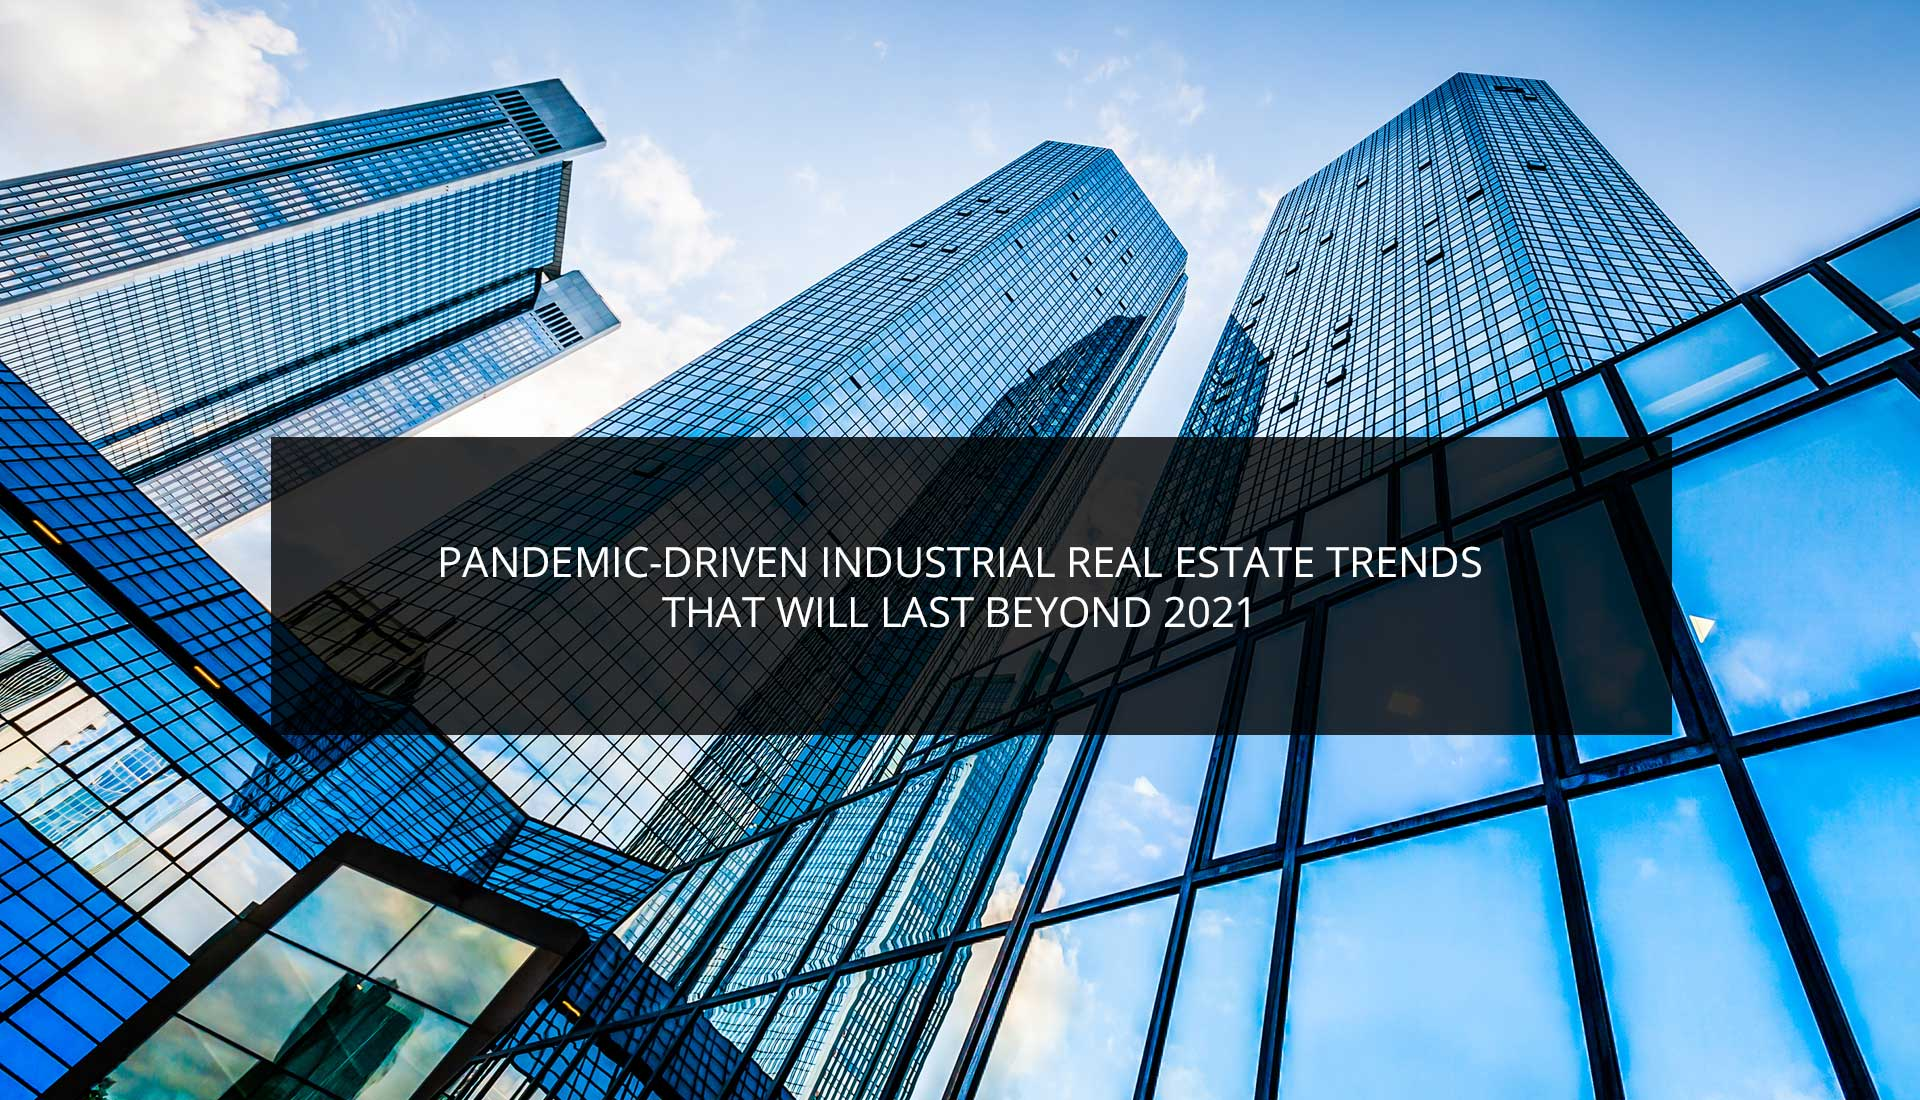 Pandemic-Driven Industrial Real Estate Trends That Will Last Beyond 2021